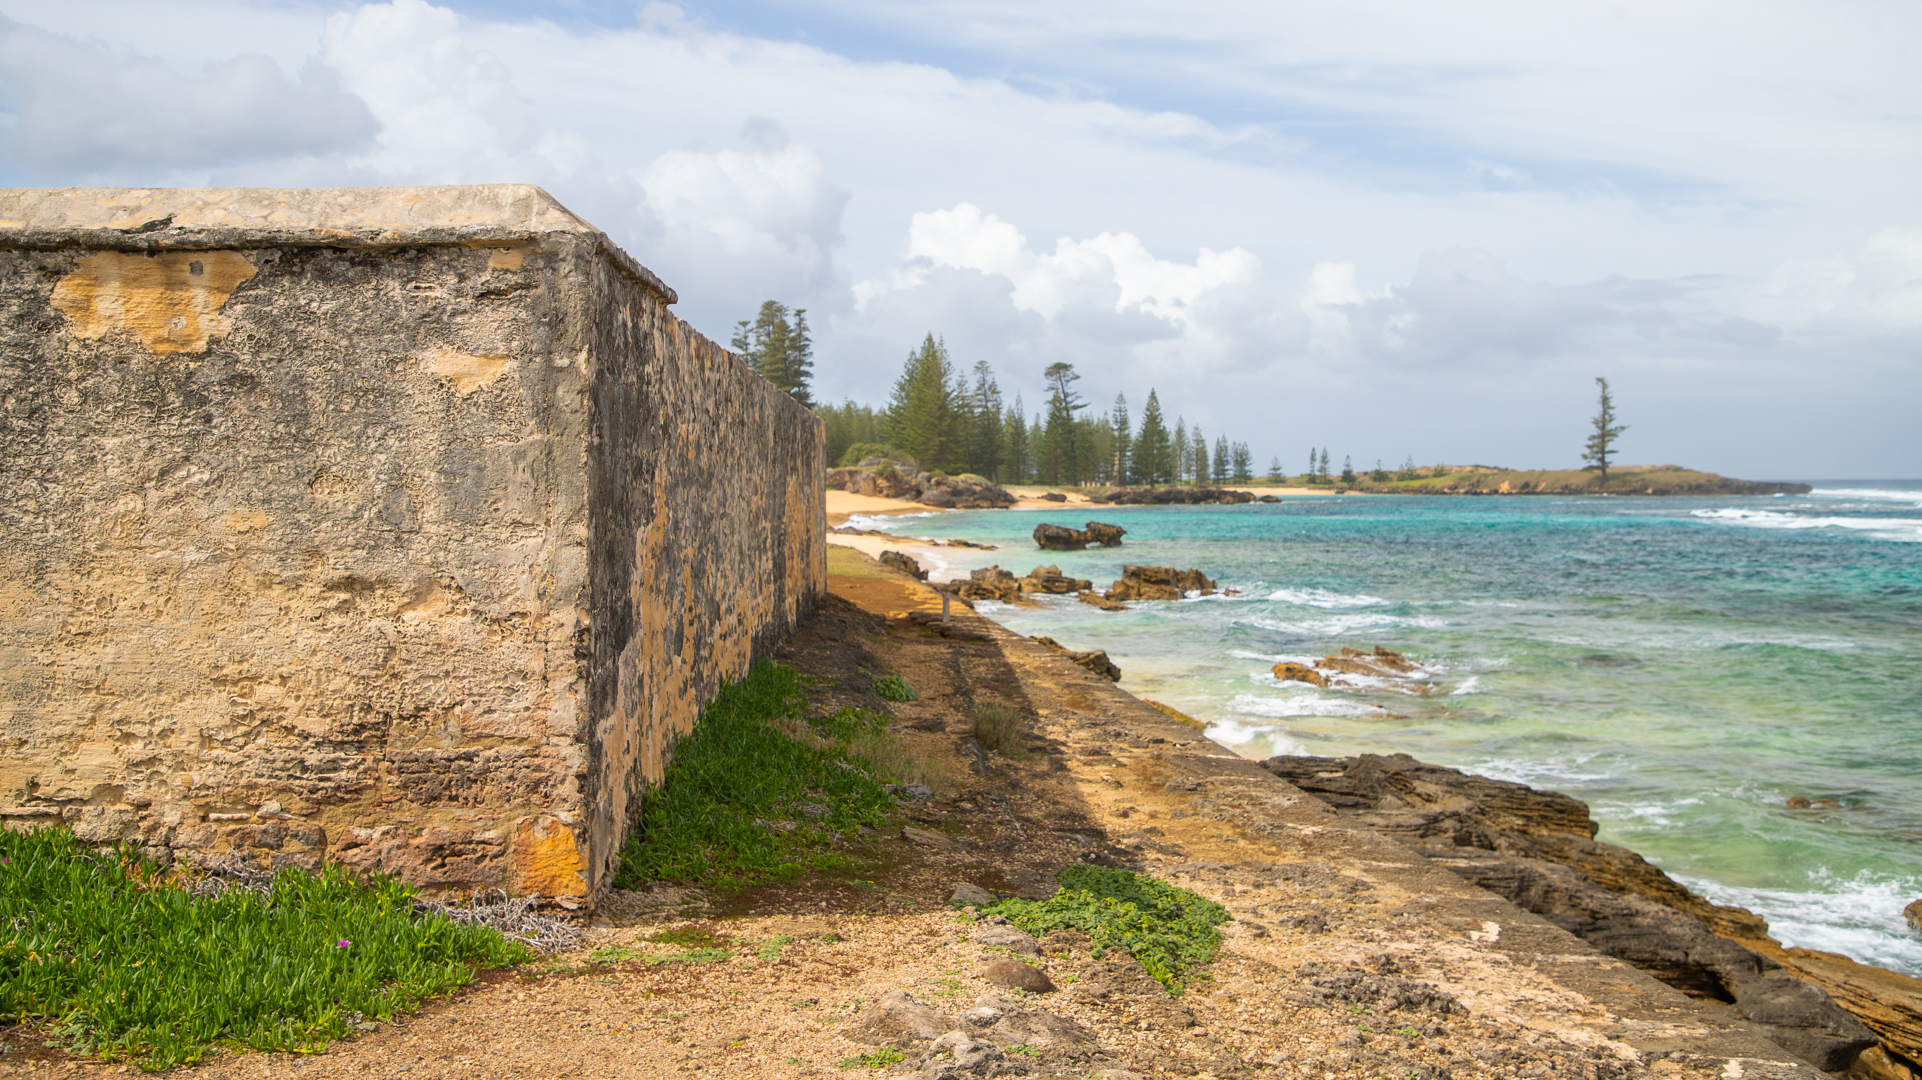 Historic ruins backing onto blue shallow waters with Norfolk Pine trees in the background.